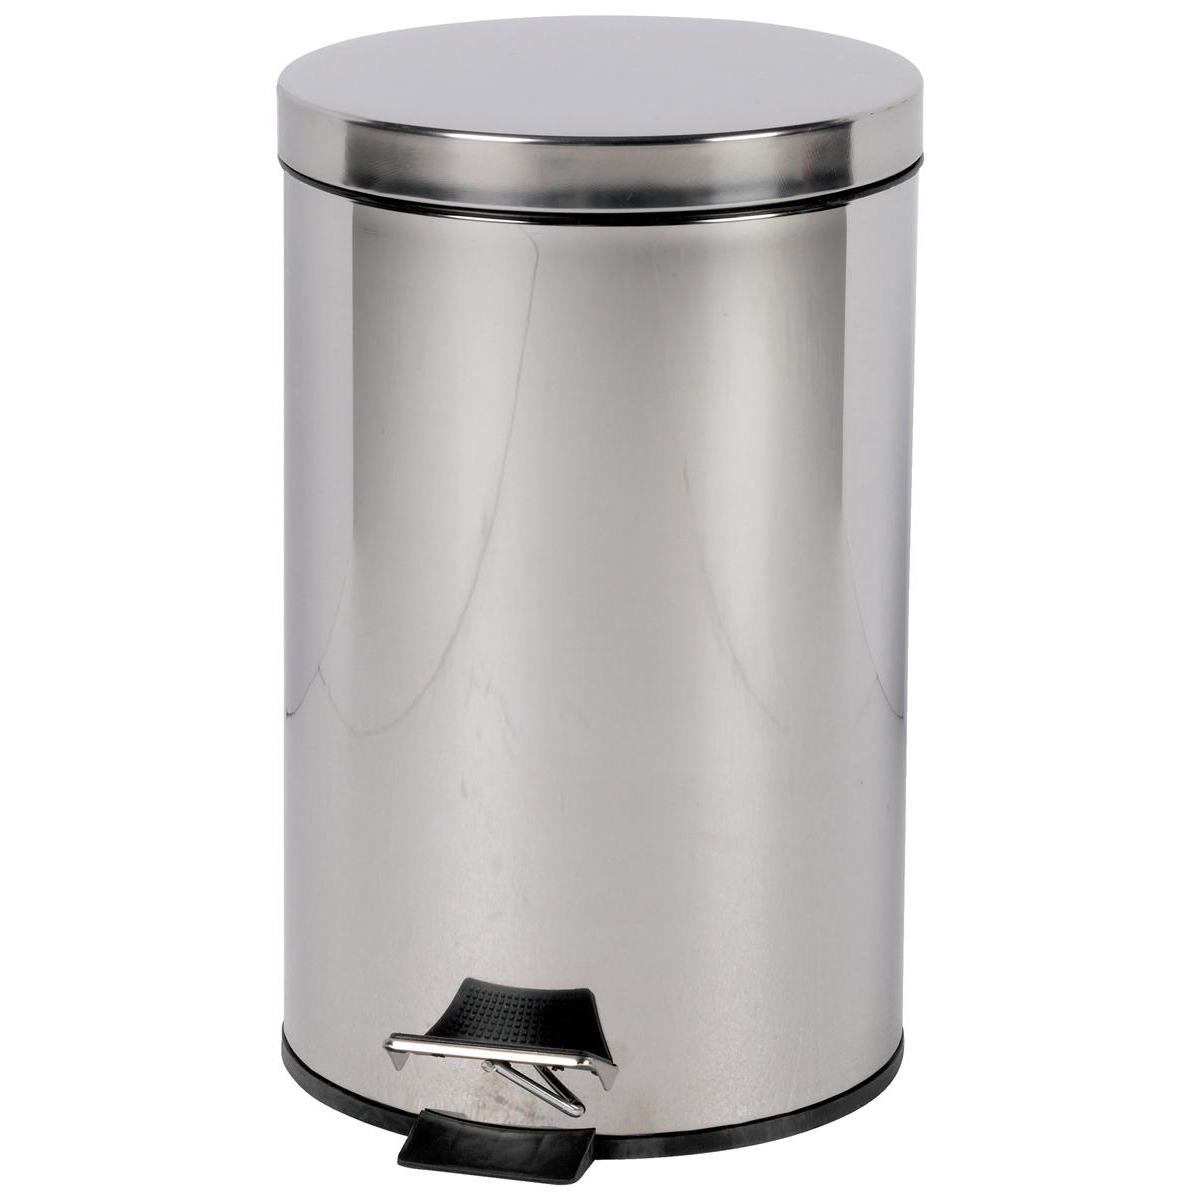 Rubbish Bins Pedal Bin with Removable Plastic Liner 12 Litre Stainless Steel